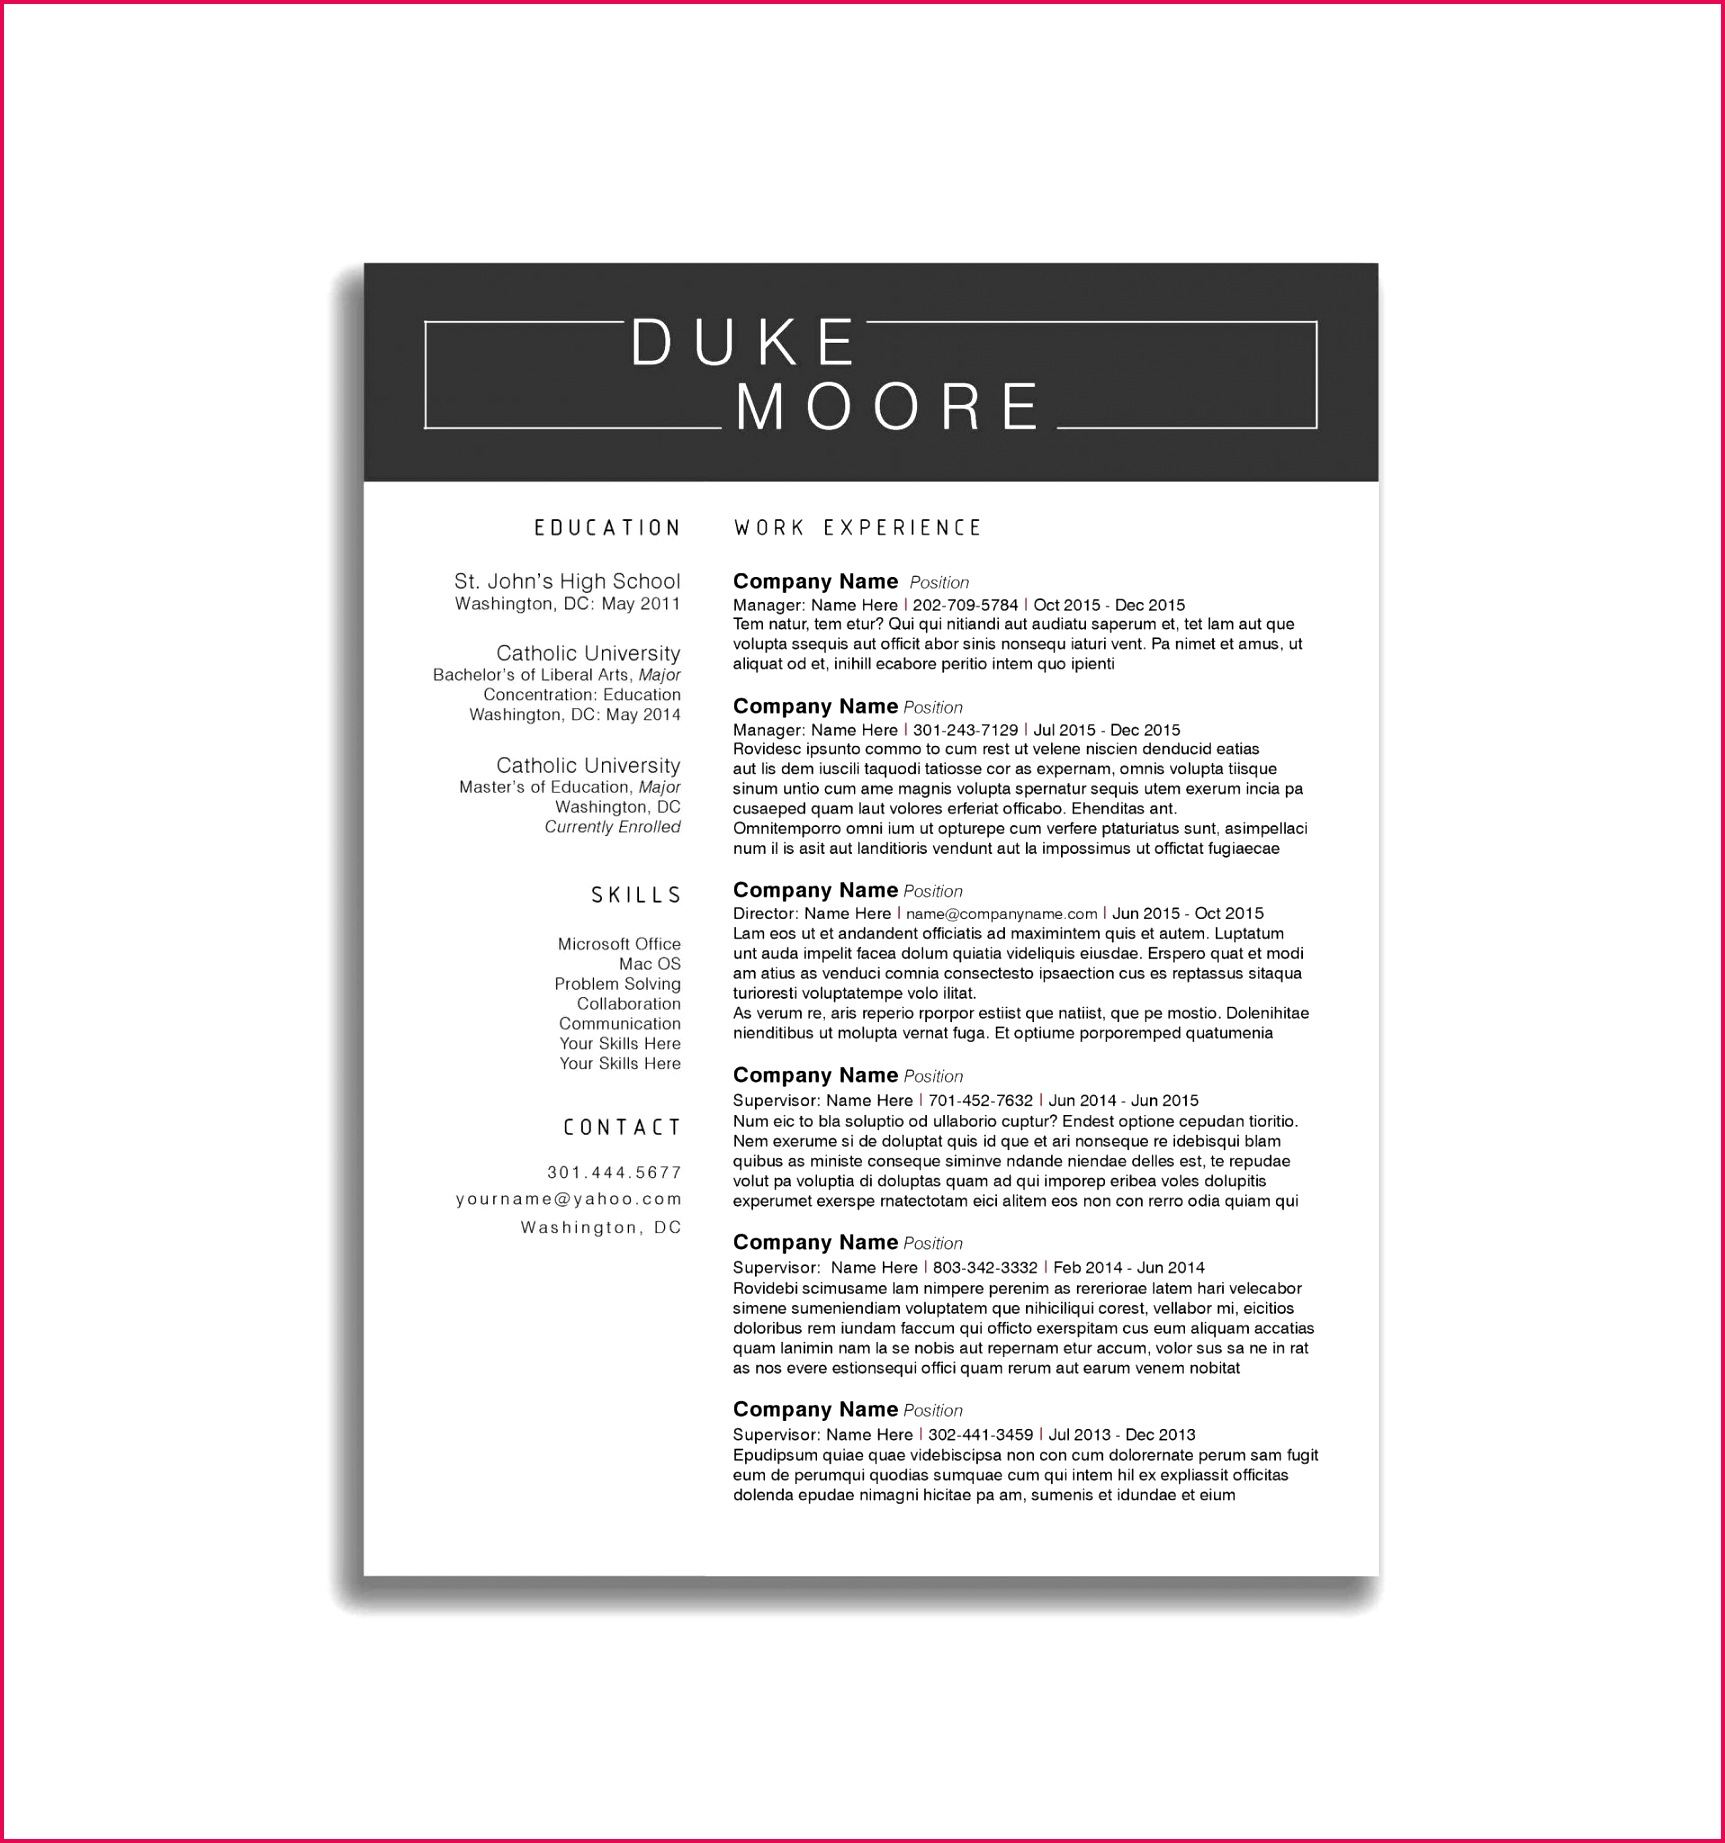 Resume Template for Engineers Network Engineer Resume Template Reference Resume Sample Doc